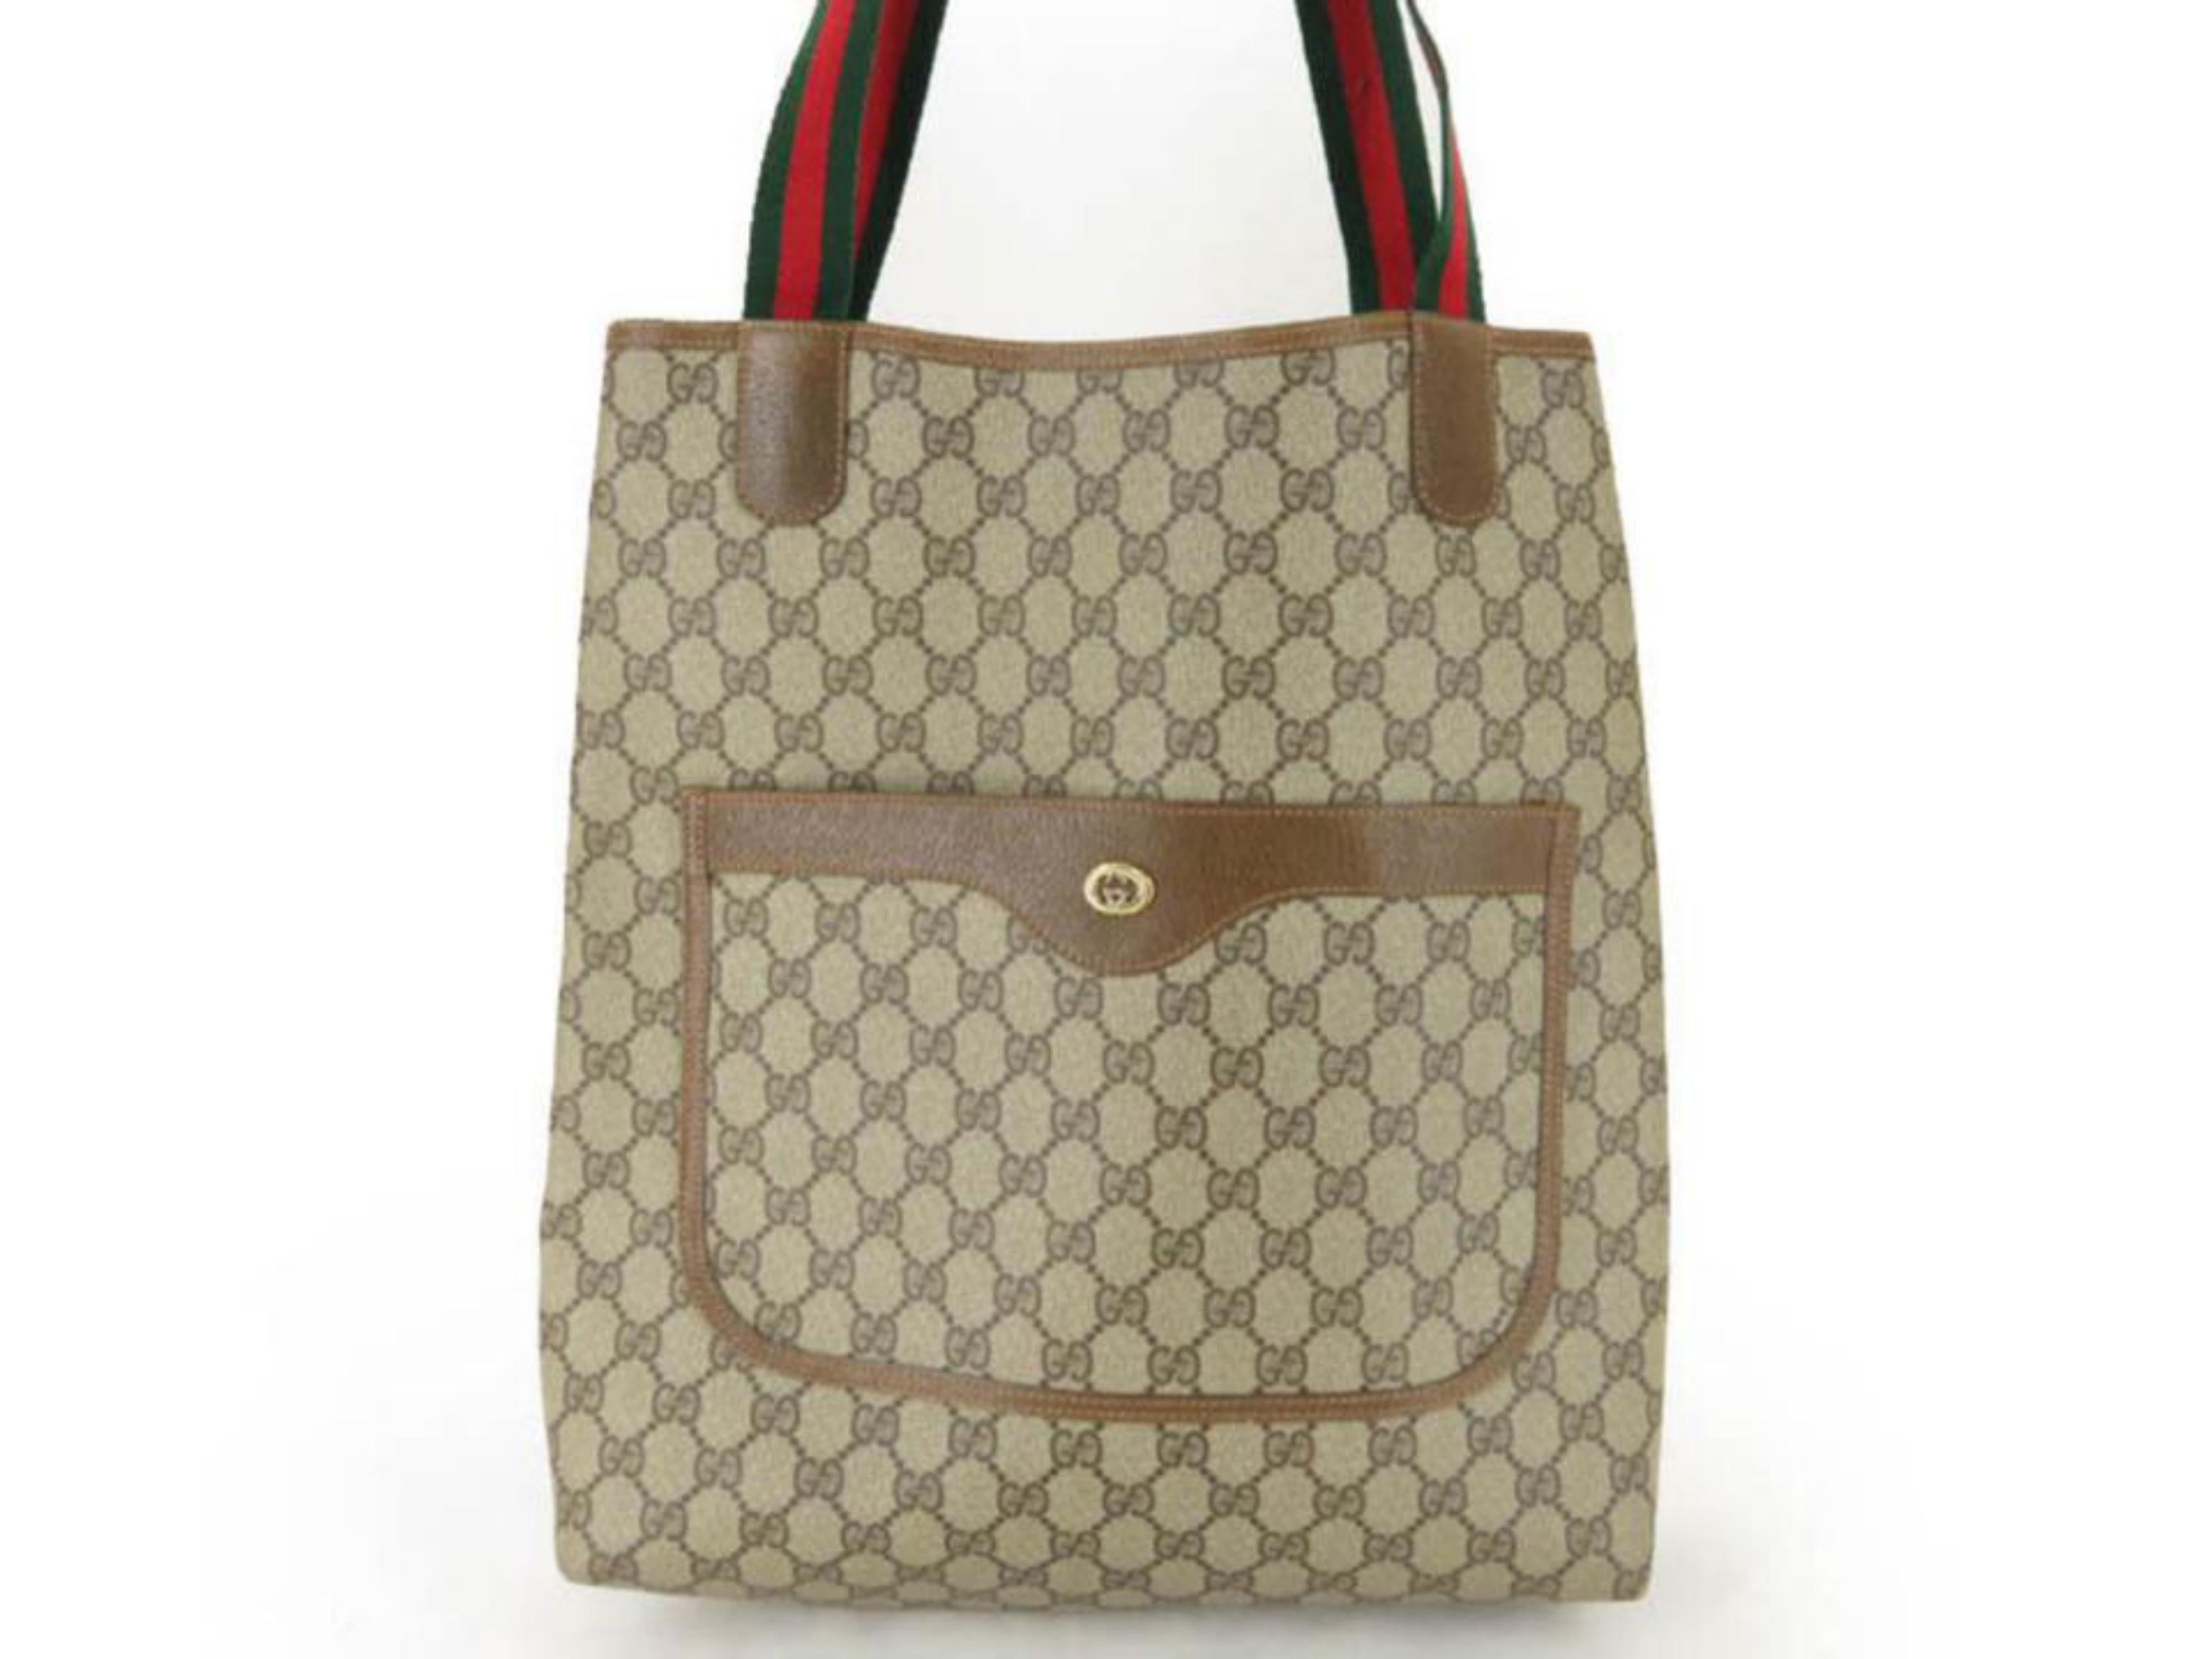 b29d5d15d1a843 Gucci Supreme Monogram Large Web Shopping 867668 Brown Coated Canvas Tote  For Sale at 1stdibs